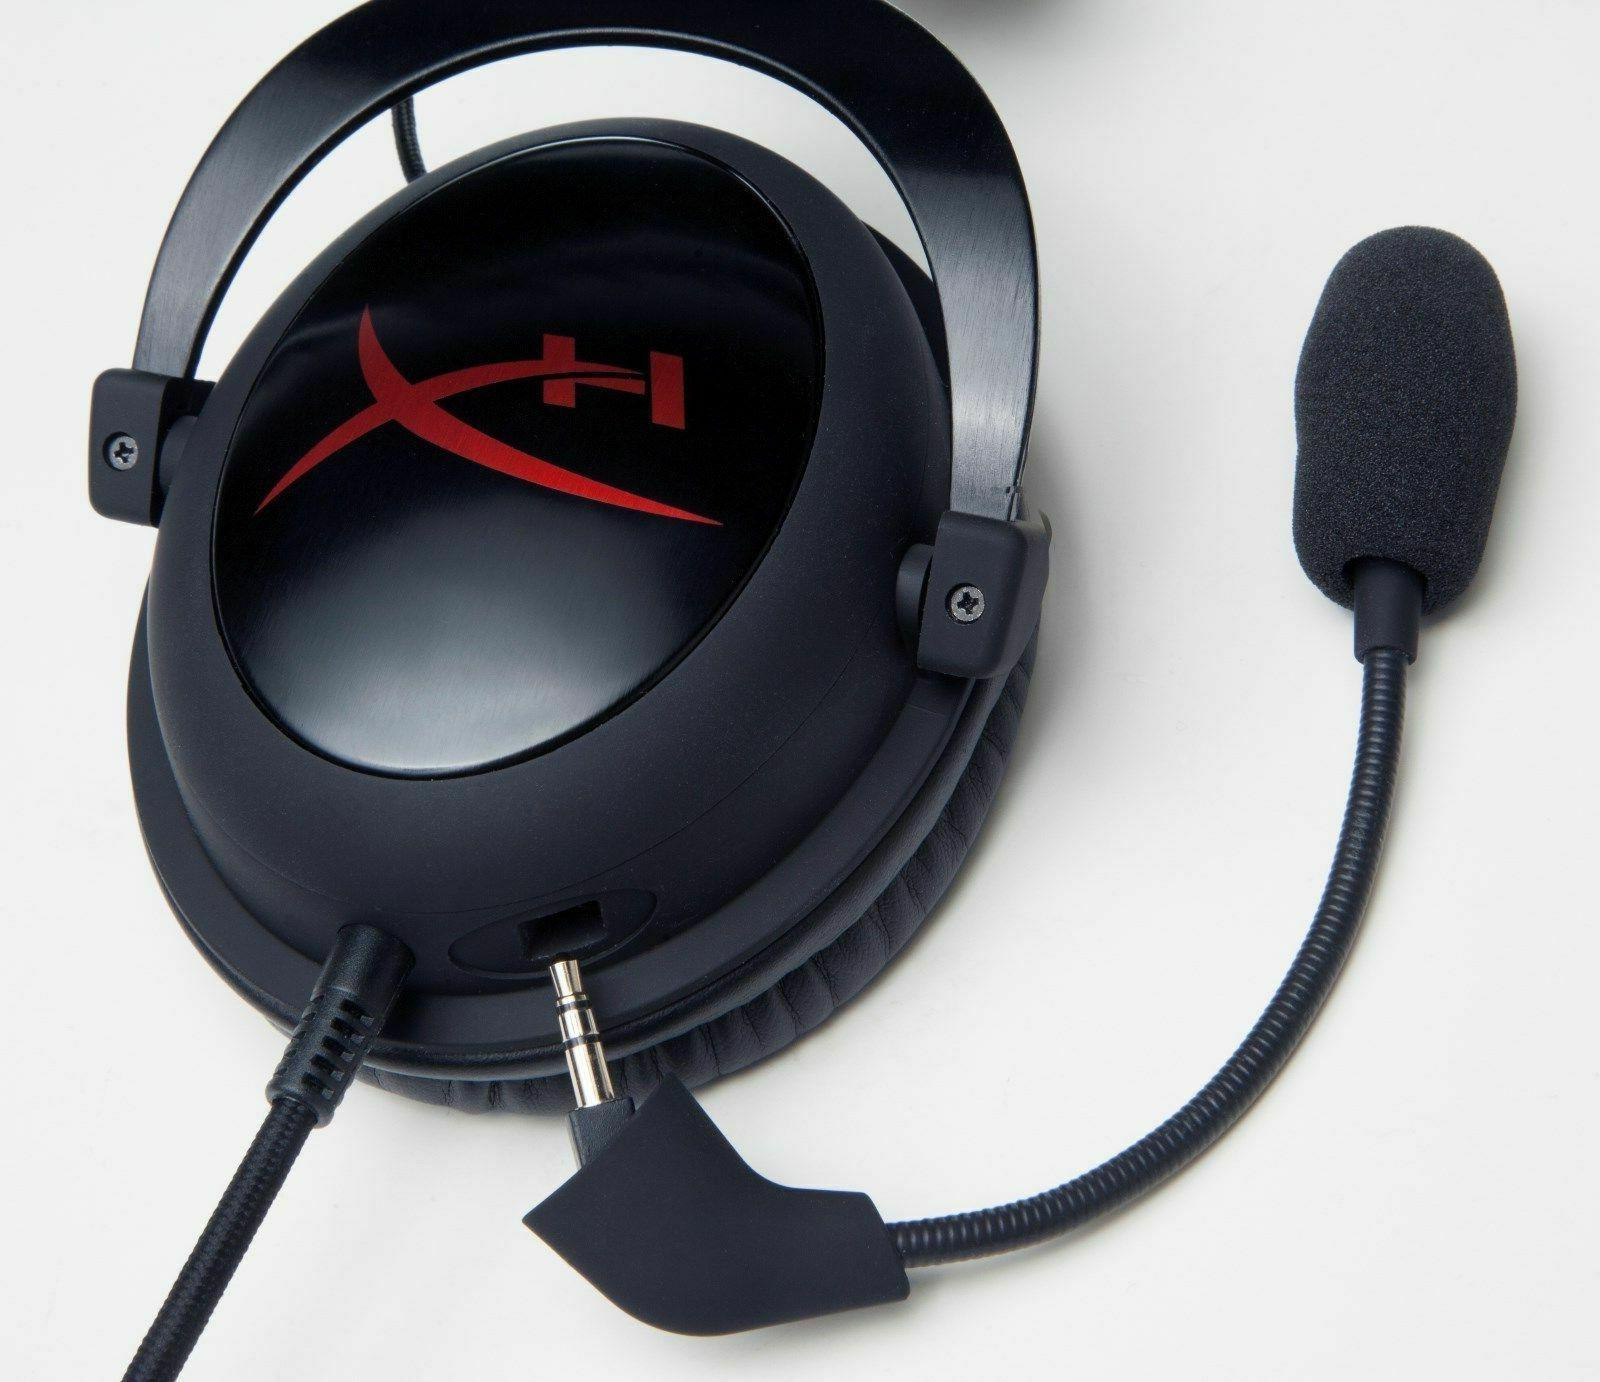 HyperX Gaming for PC, PS4, Wii